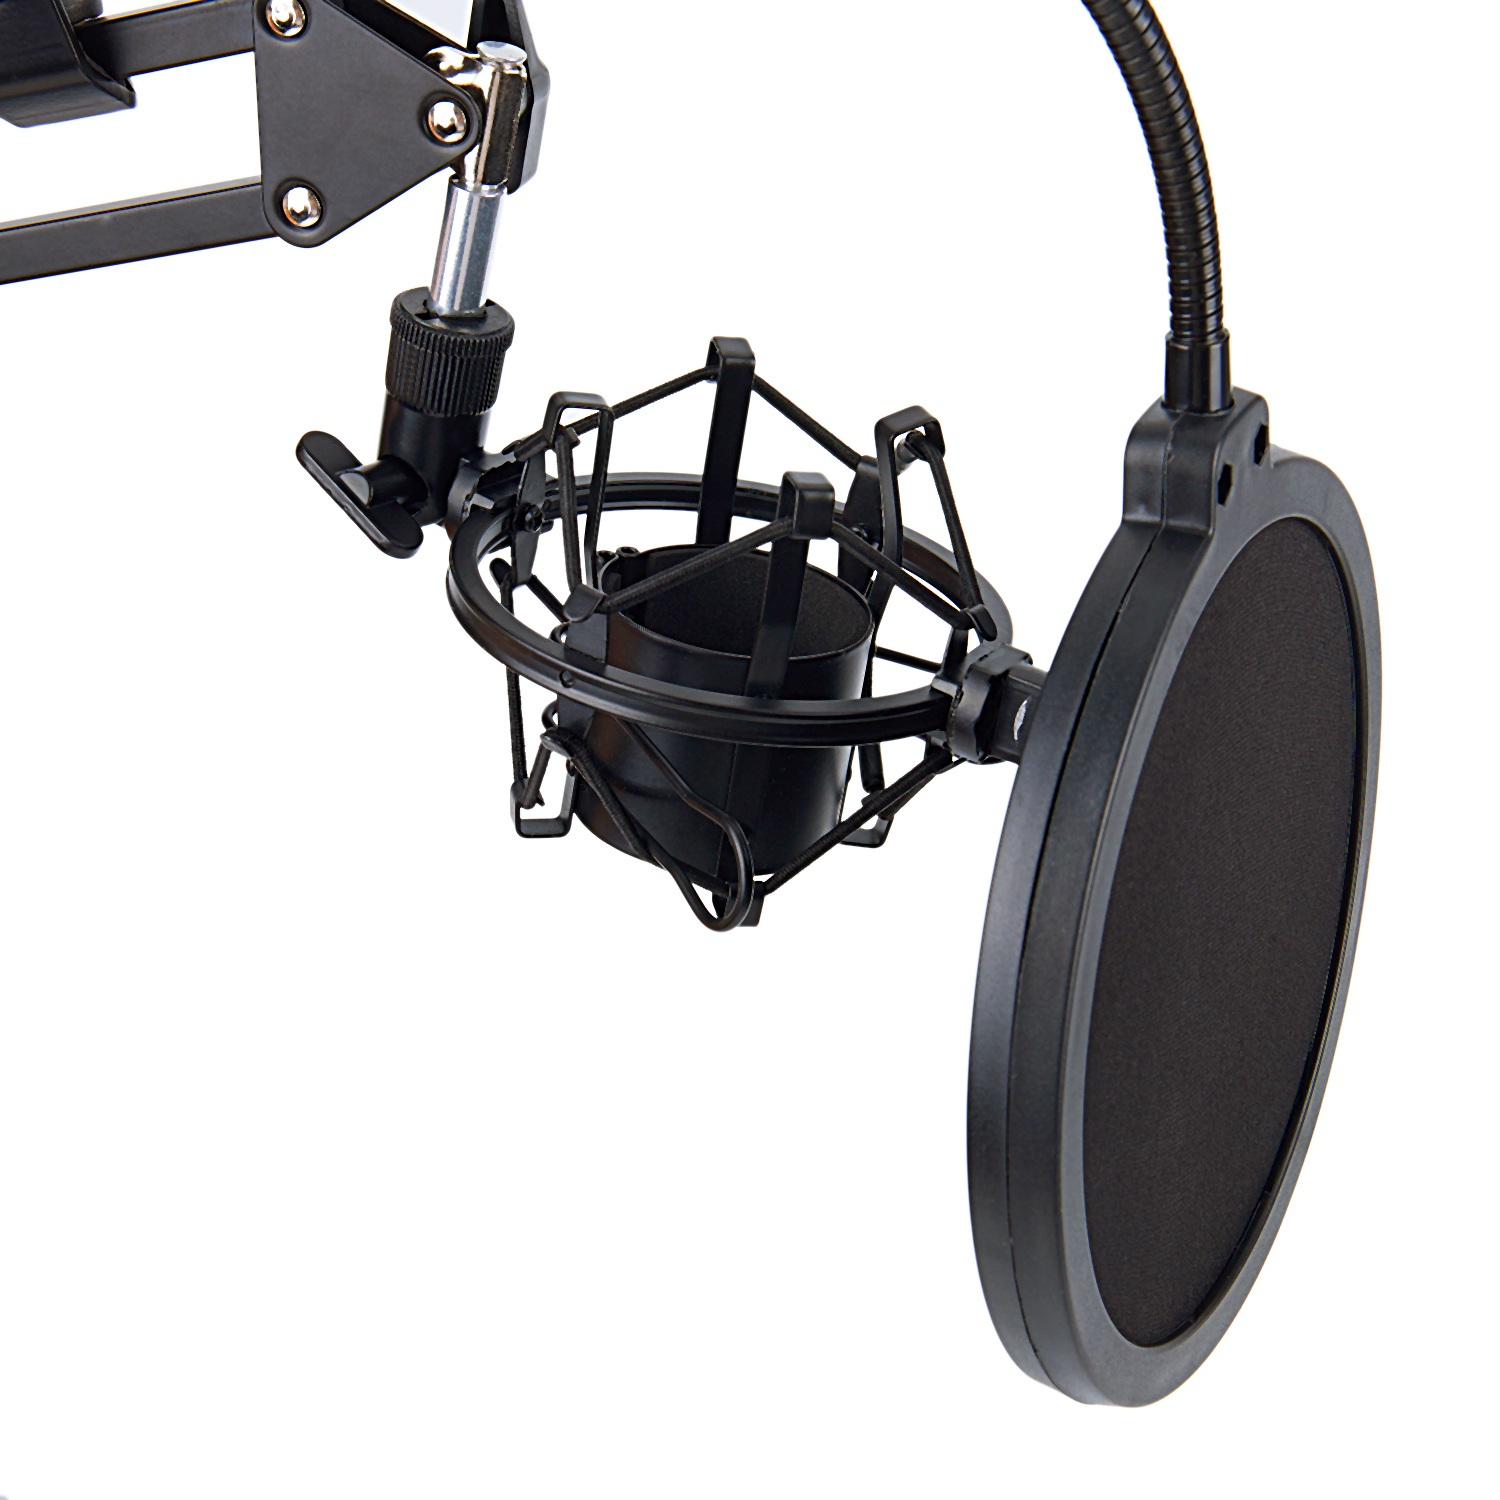 NB-35 Microphone Scissor Arm Stand and Table Mounting Clamp&NW Filter Windscreen Shield & Metal Mount Kit 3